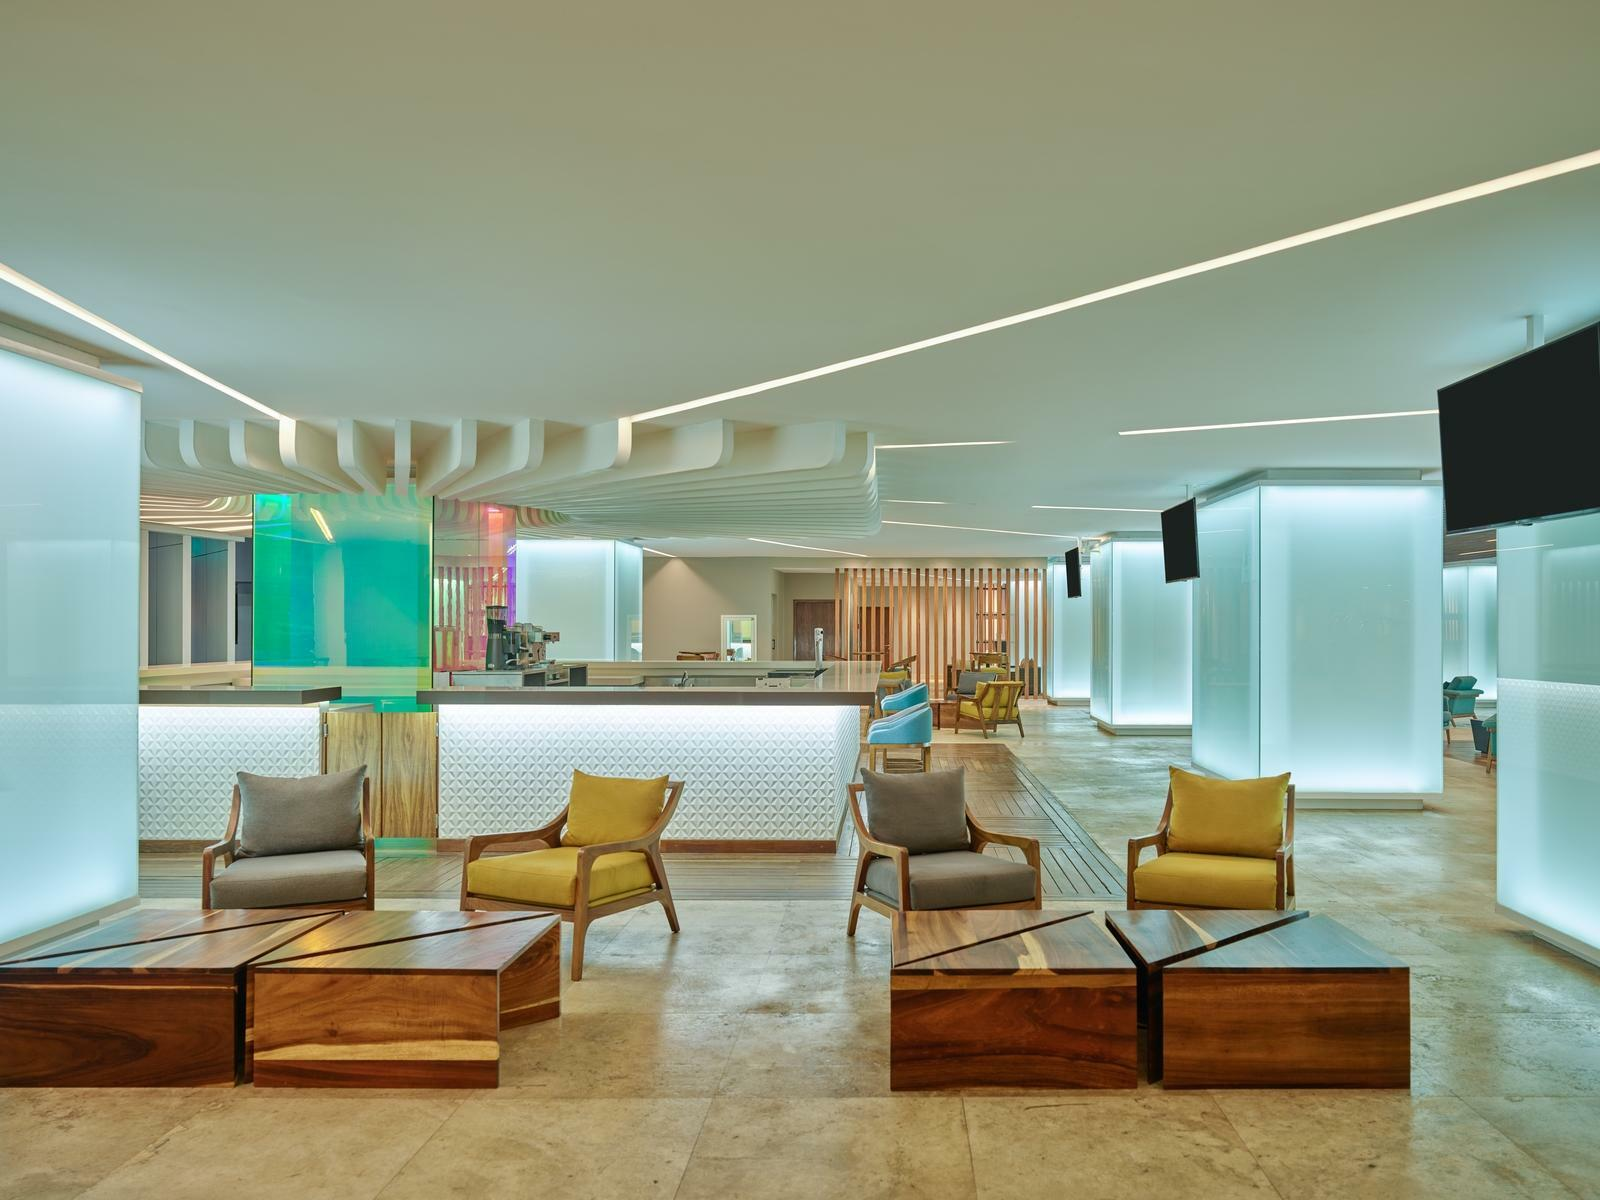 lobby with lounge seating and coffee tables